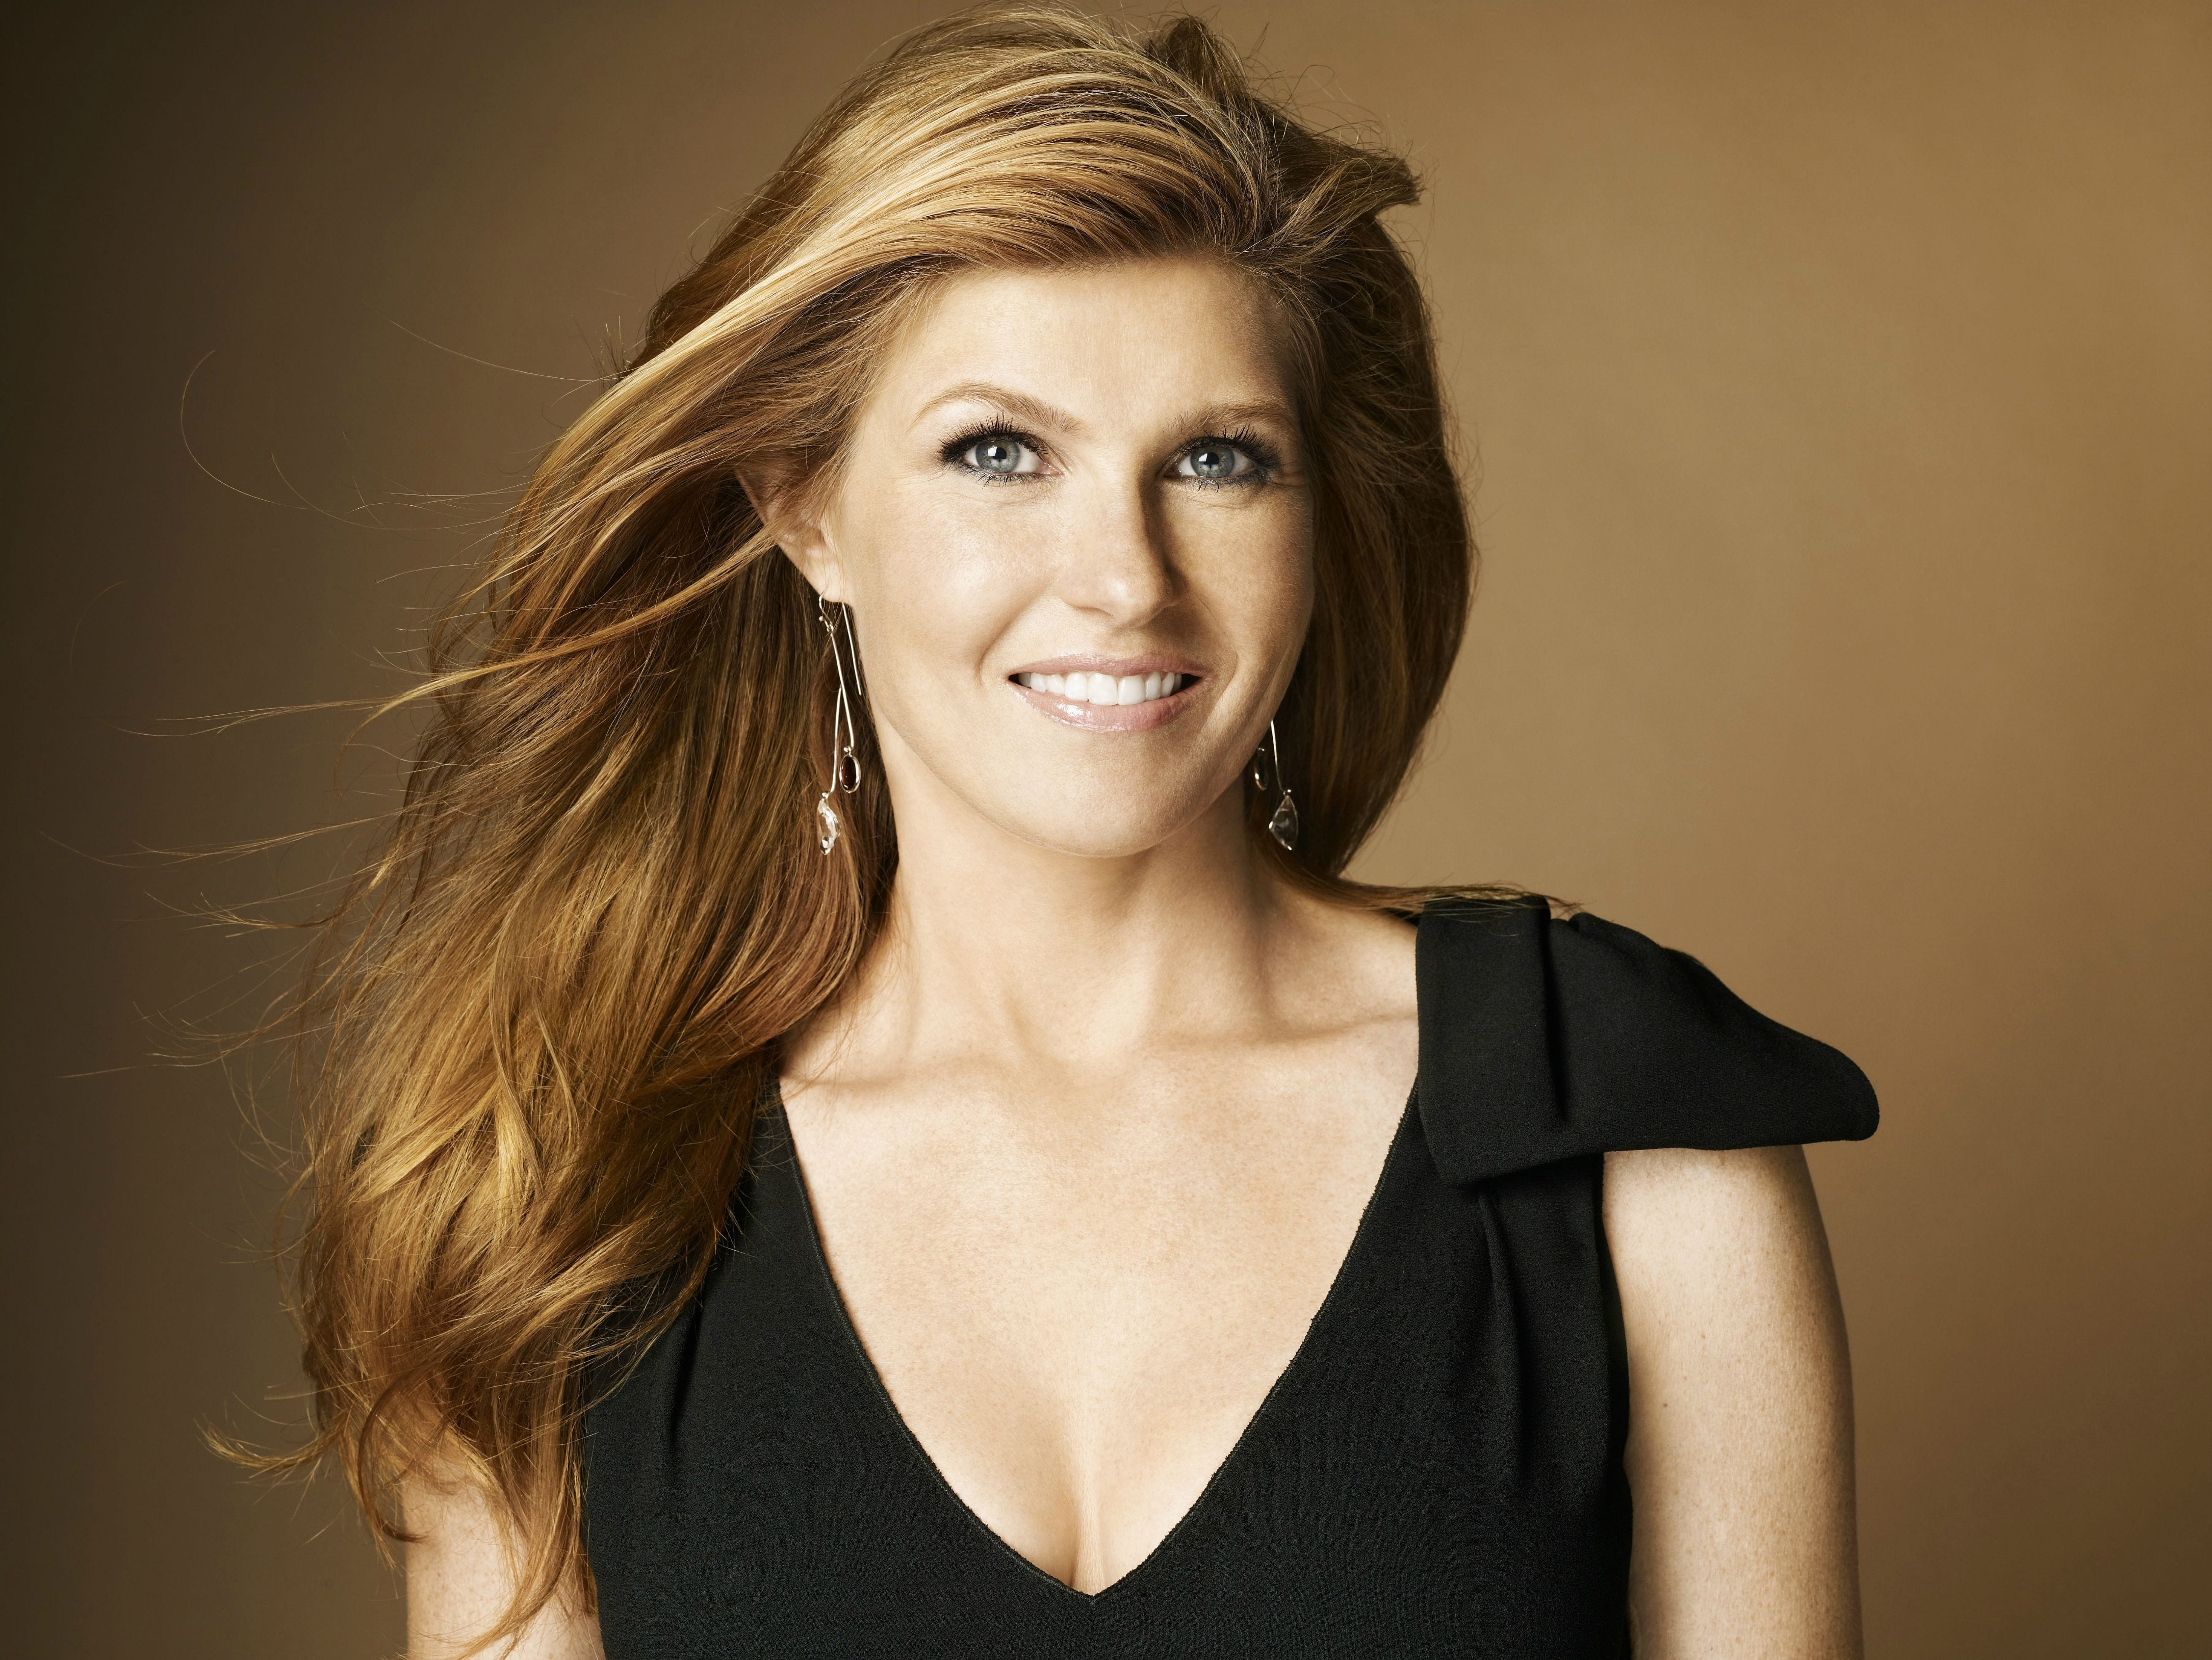 7 HD Connie Britton Wallpapers - HDWallSource.com